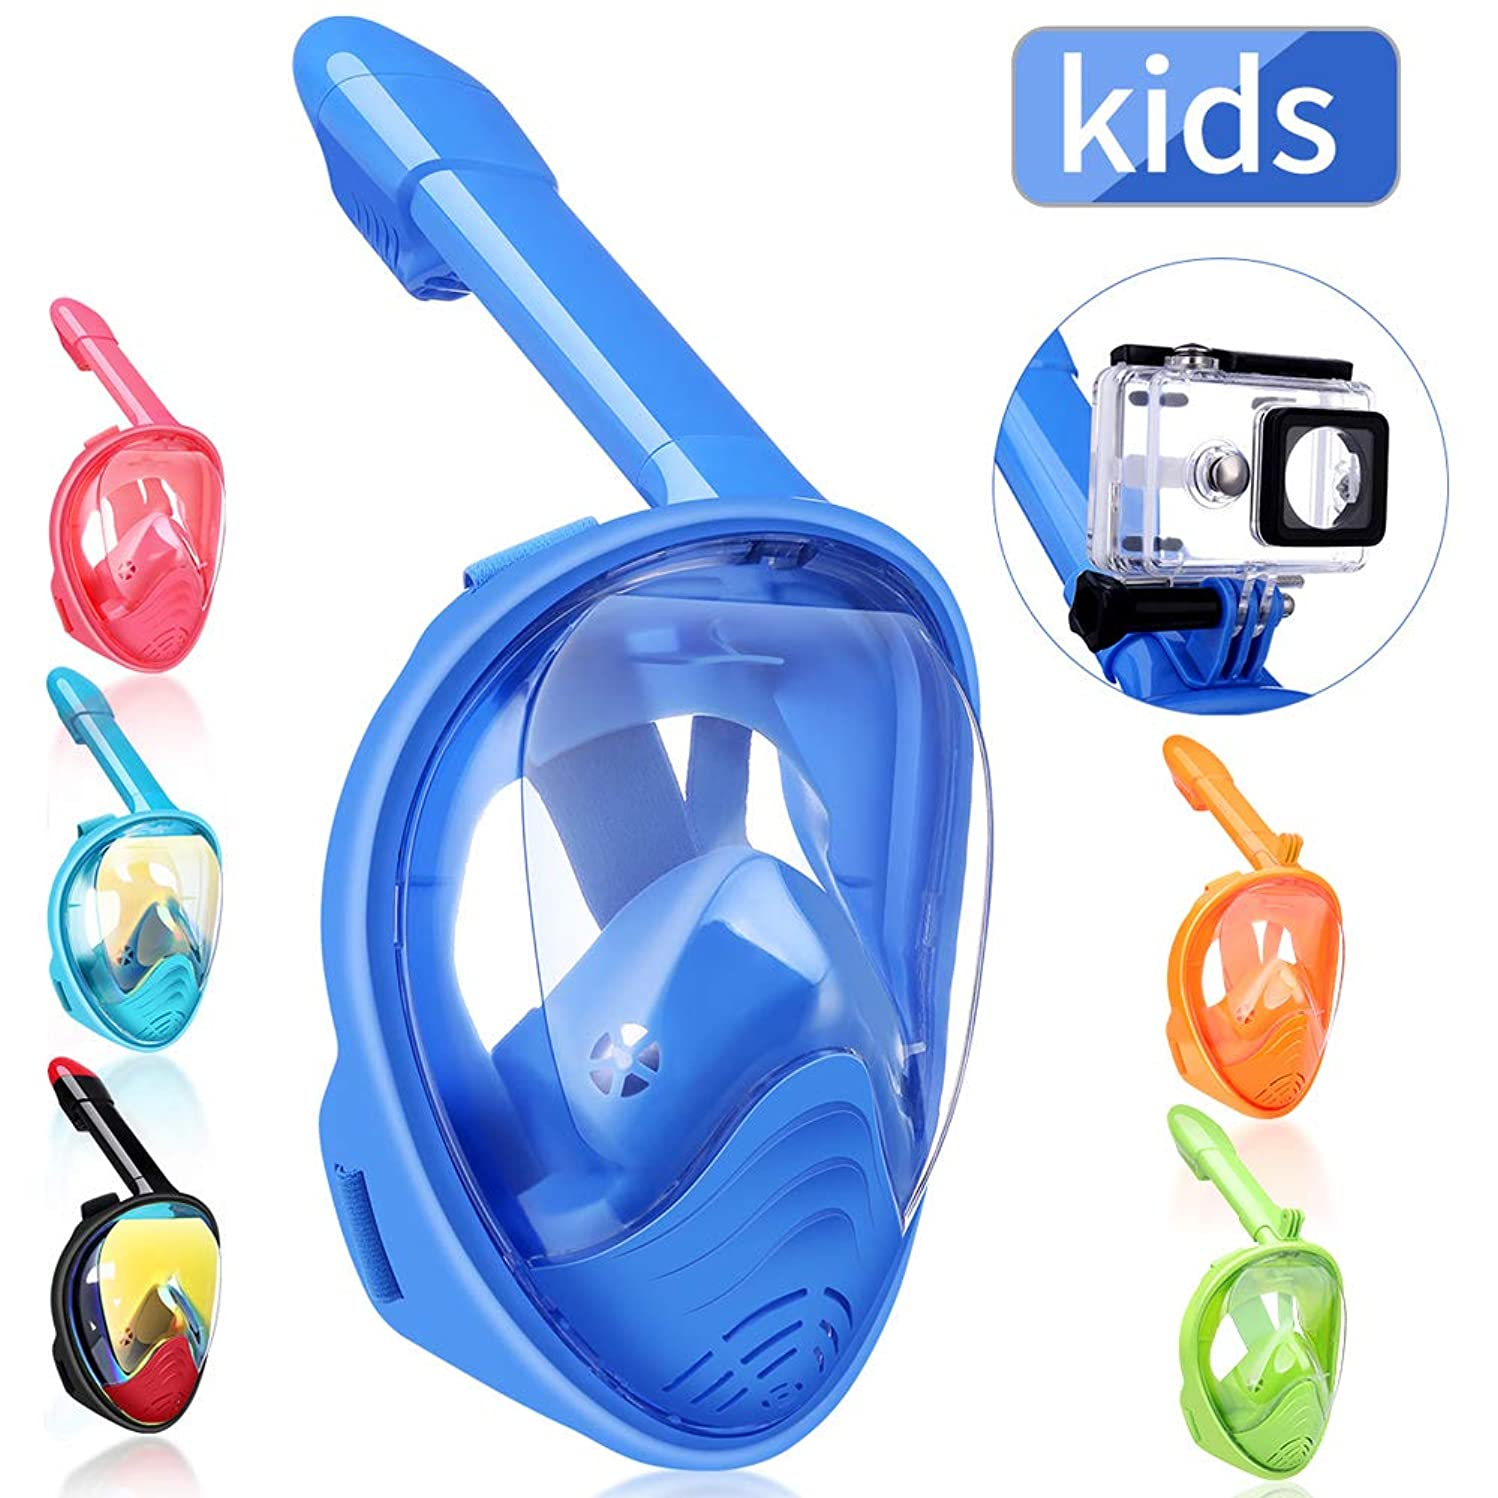 QingSong Kids Full Face Snorkel Mask, Snorkeling Mask with Detachable Camera Mount, 180 Panoramic Upgraded Dive Mask with Newest Breathing System, Dry Top Set Anti-Fog Anti-Leak Anti-UV